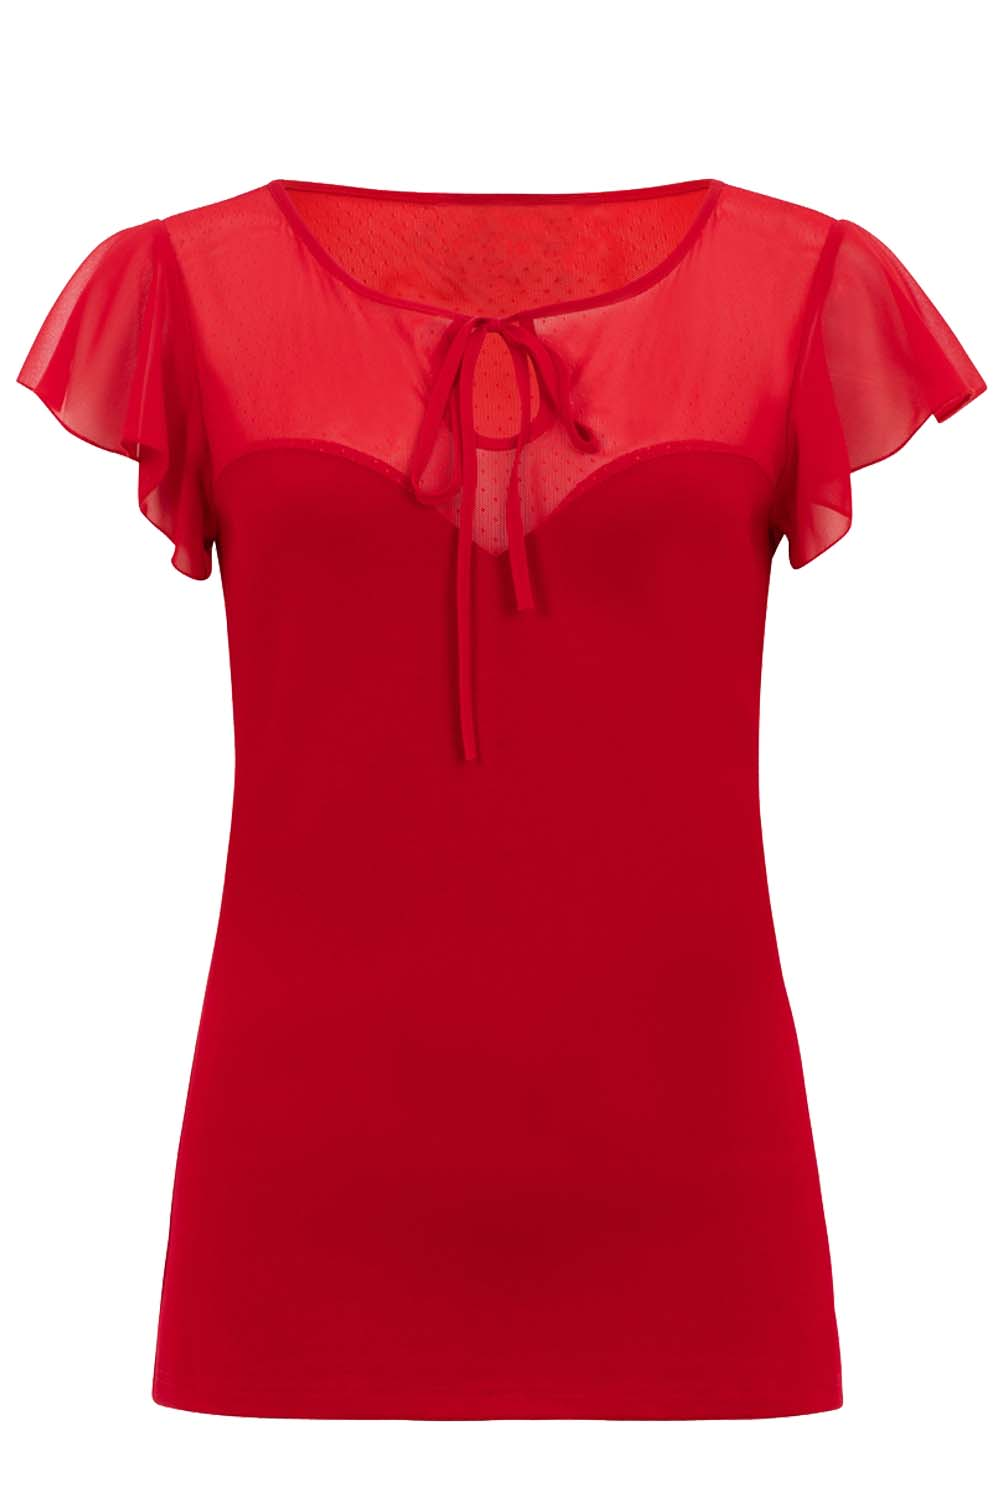 vintage styled top sweetheart red Alyssa